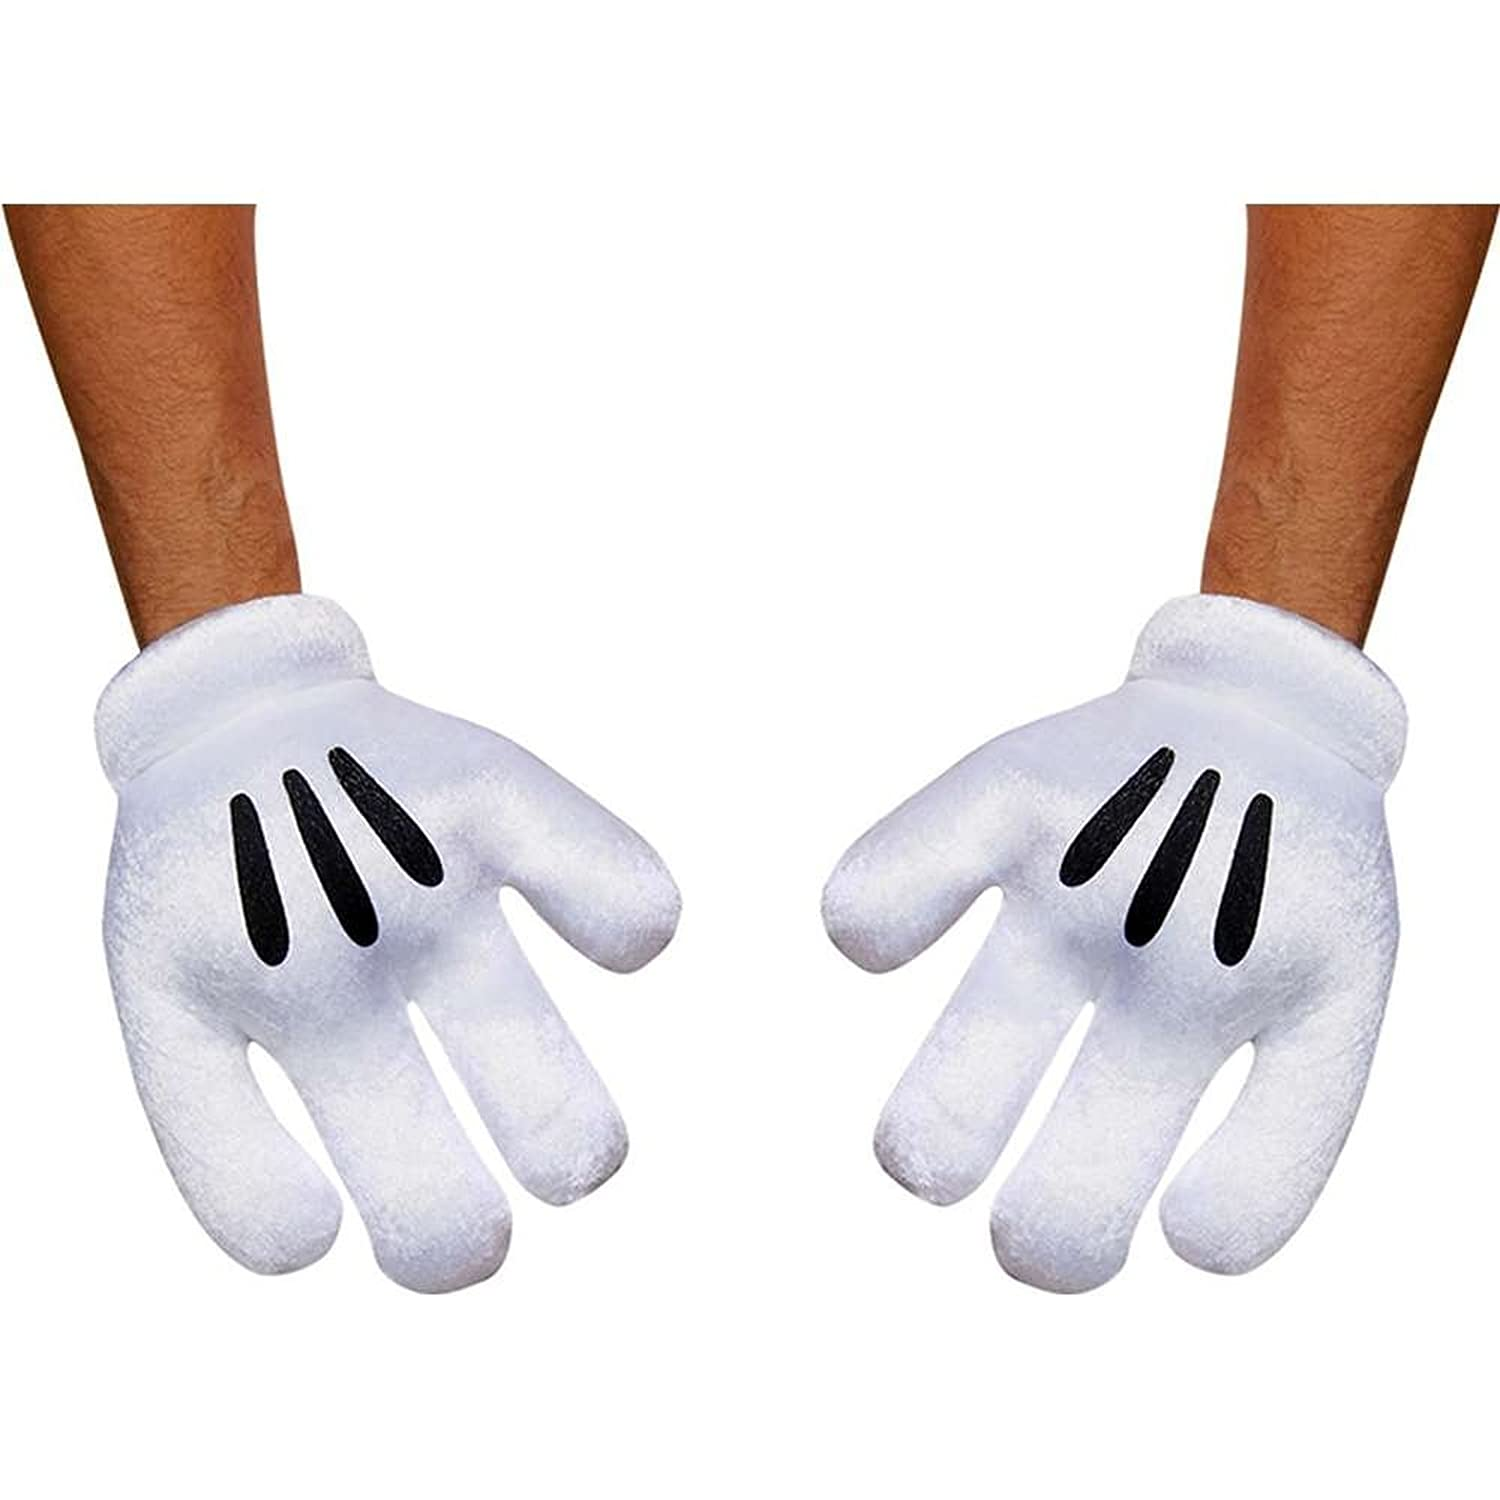 Image result for mickey gloves